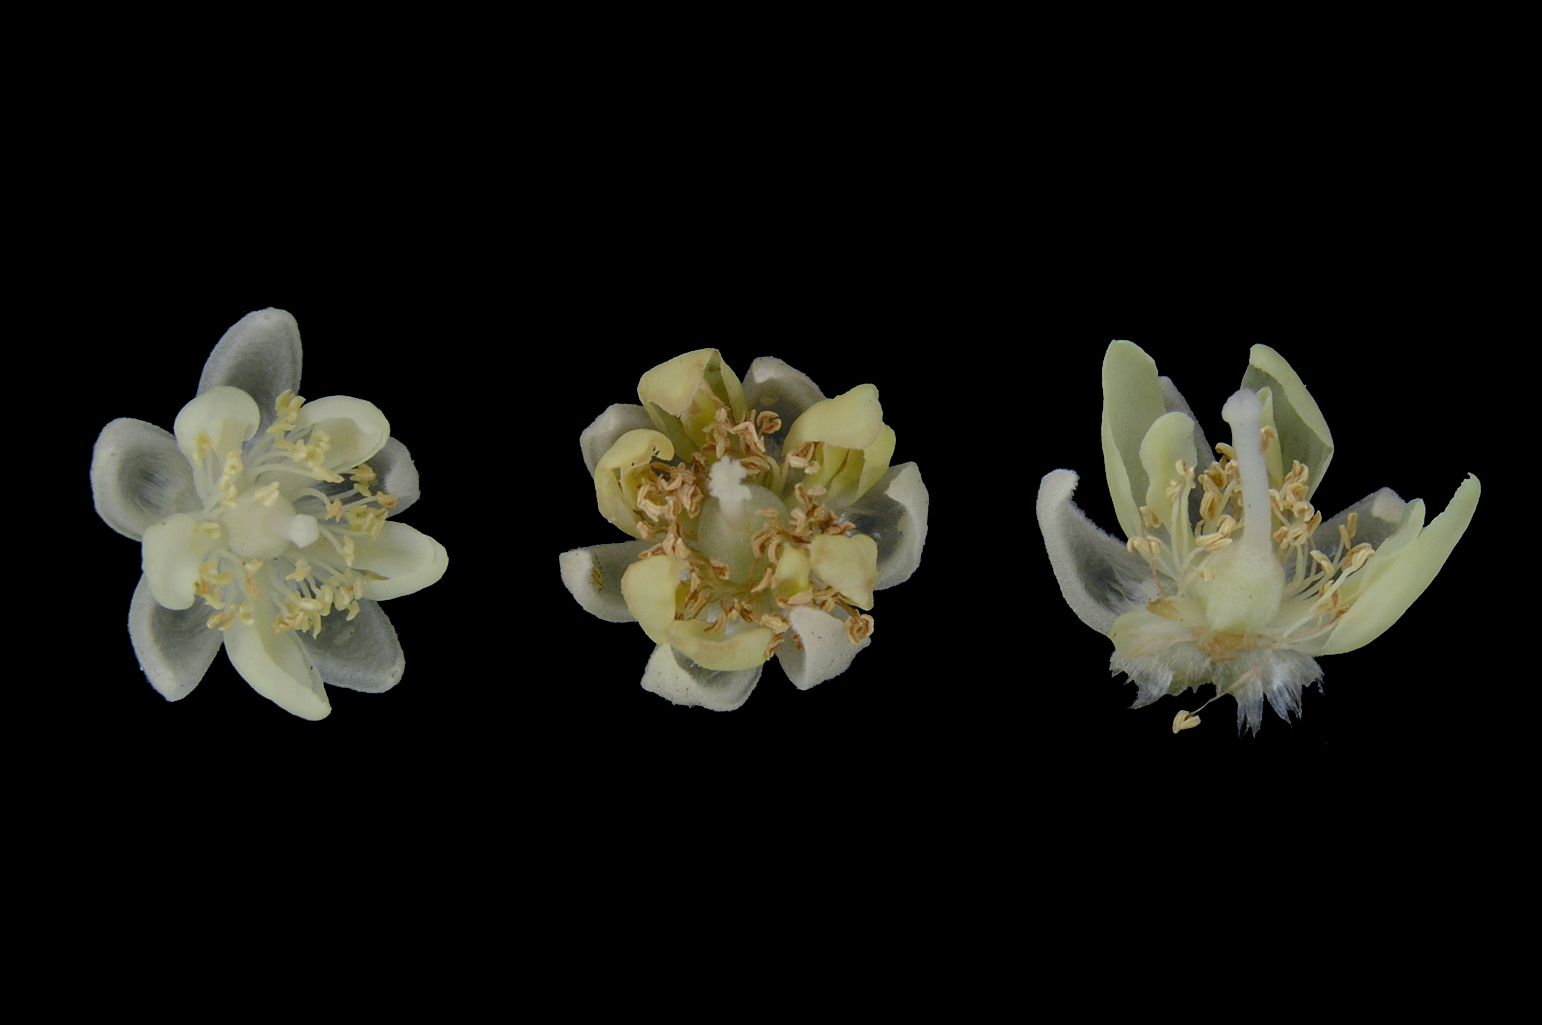 Three flowers 0.5 cm in diam.; the one on the right clearly shows the petaloid staminodes